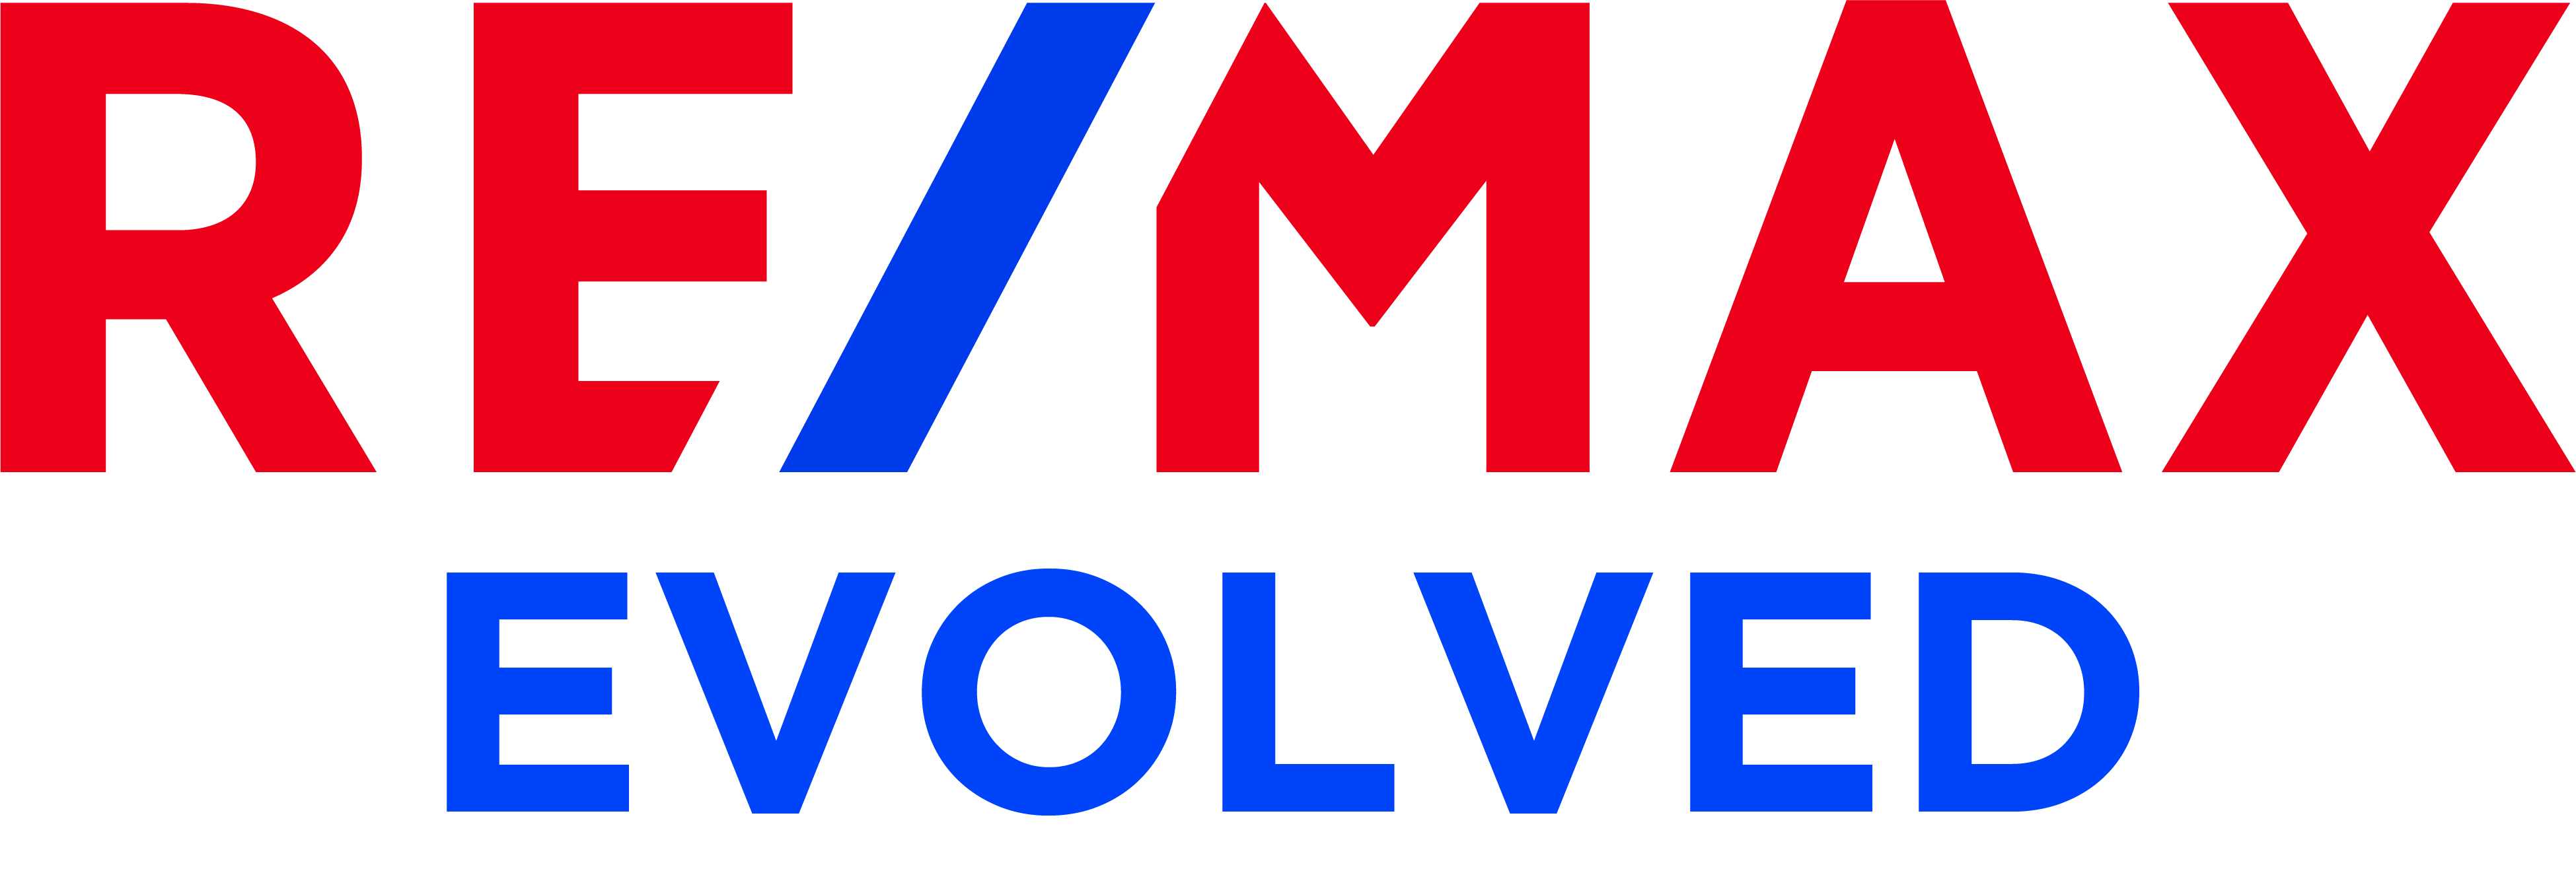 RE/MAX Evolved